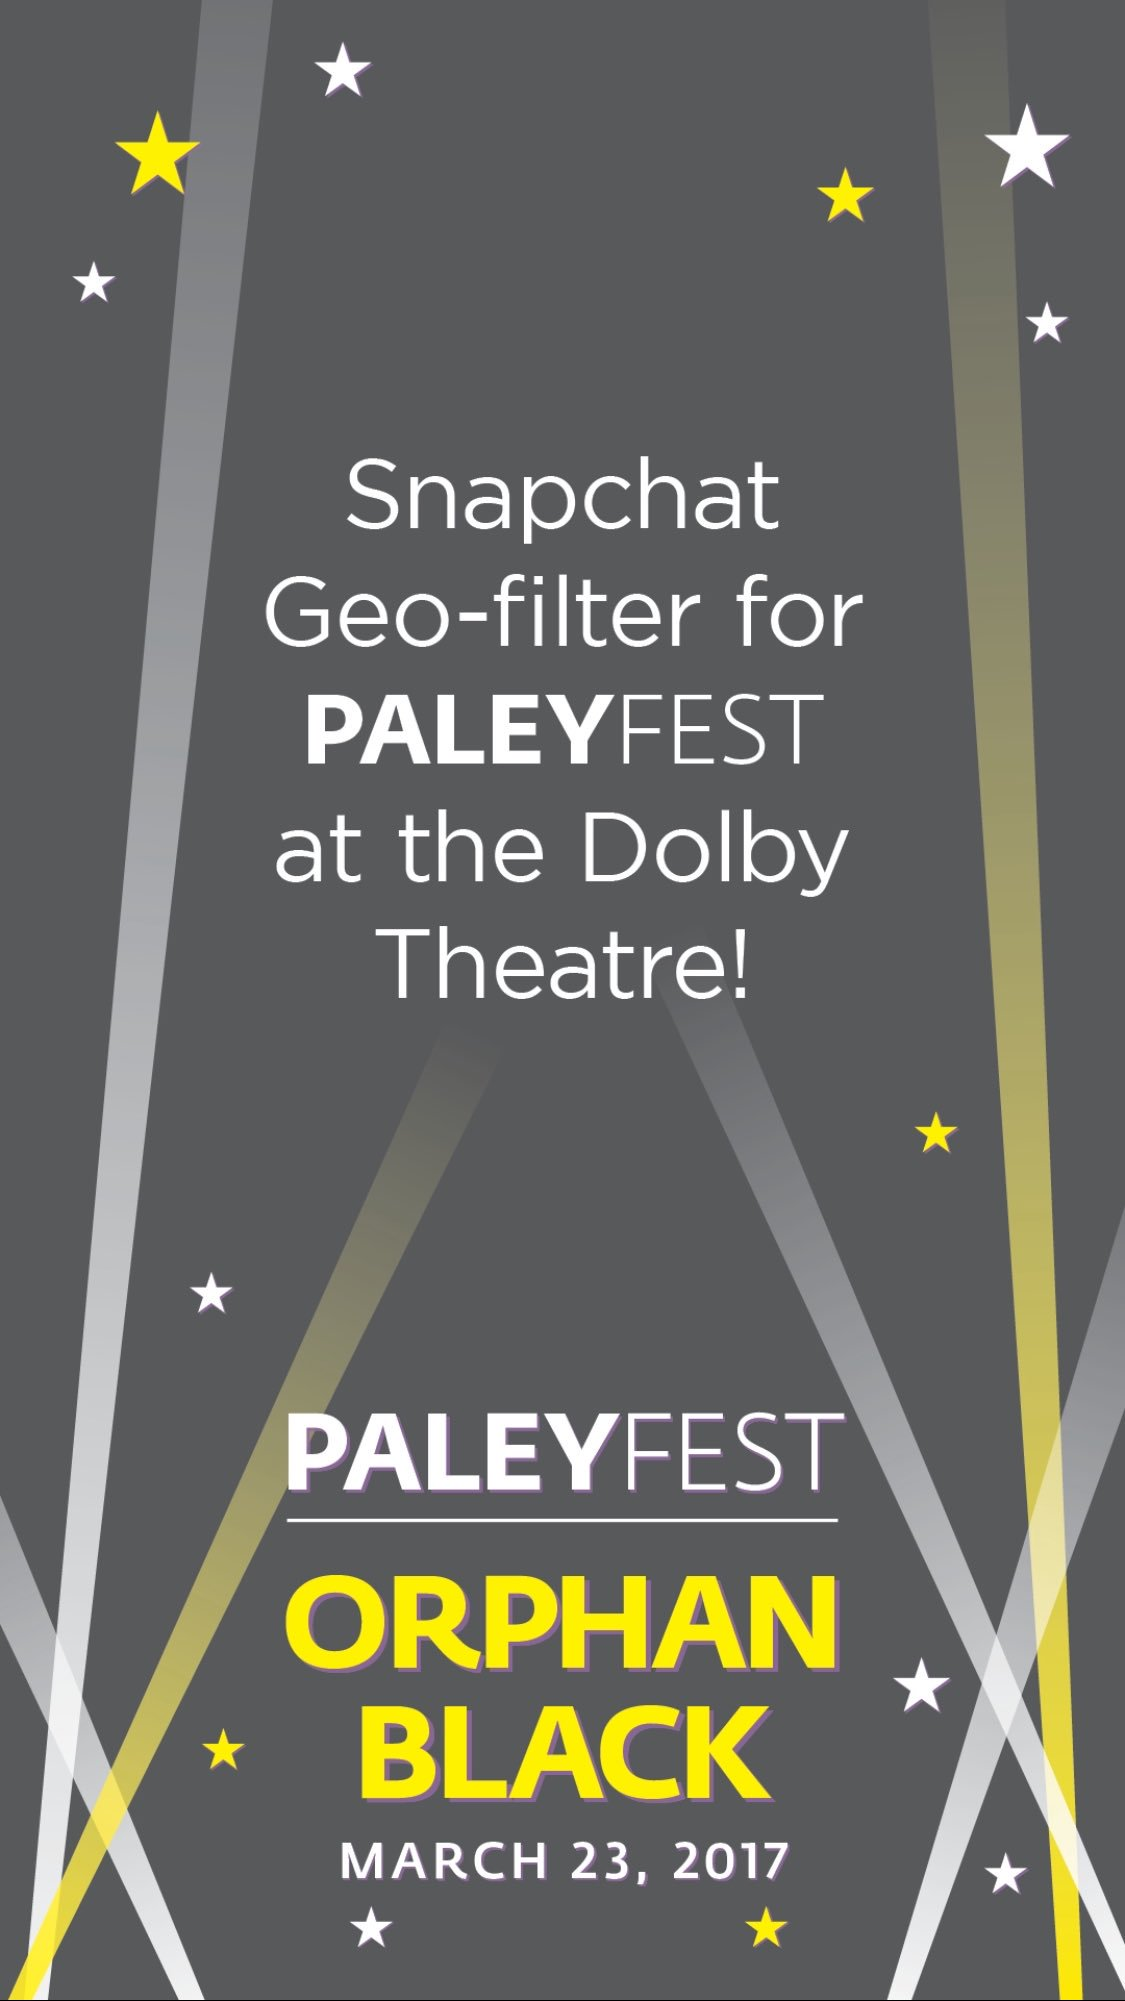 .@OrphanBlack fans at #PaleyFest: be sure to use our special geofilter when you're snapping tonight & follow @paleycenter on Snap!👻📺 https://t.co/VitrSPwz7A